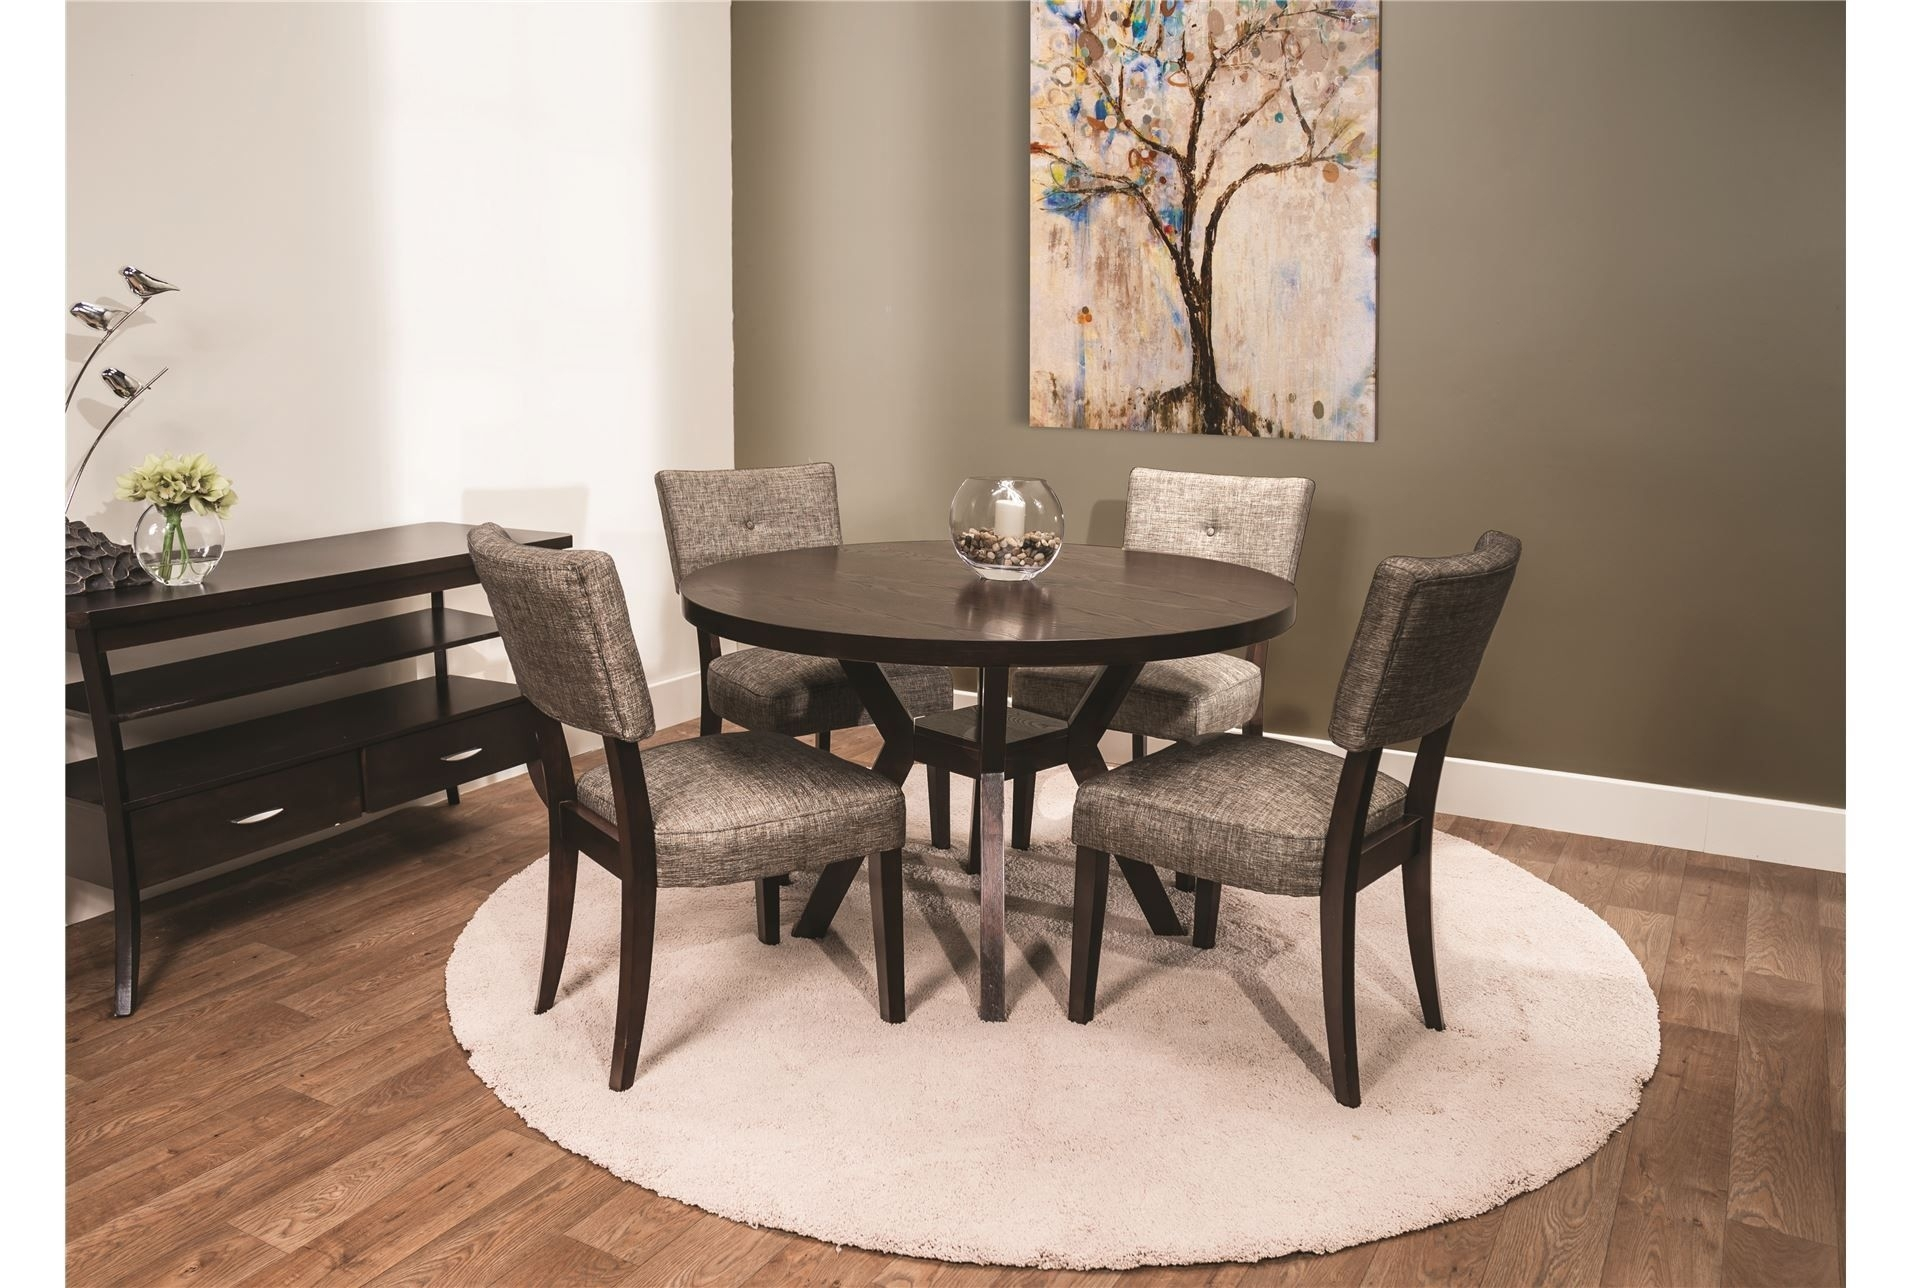 Macie Round 5 Piece Dining | Taj Style | Pinterest | Dining And House With Regard To 2017 Macie 5 Piece Round Dining Sets (Image 16 of 20)